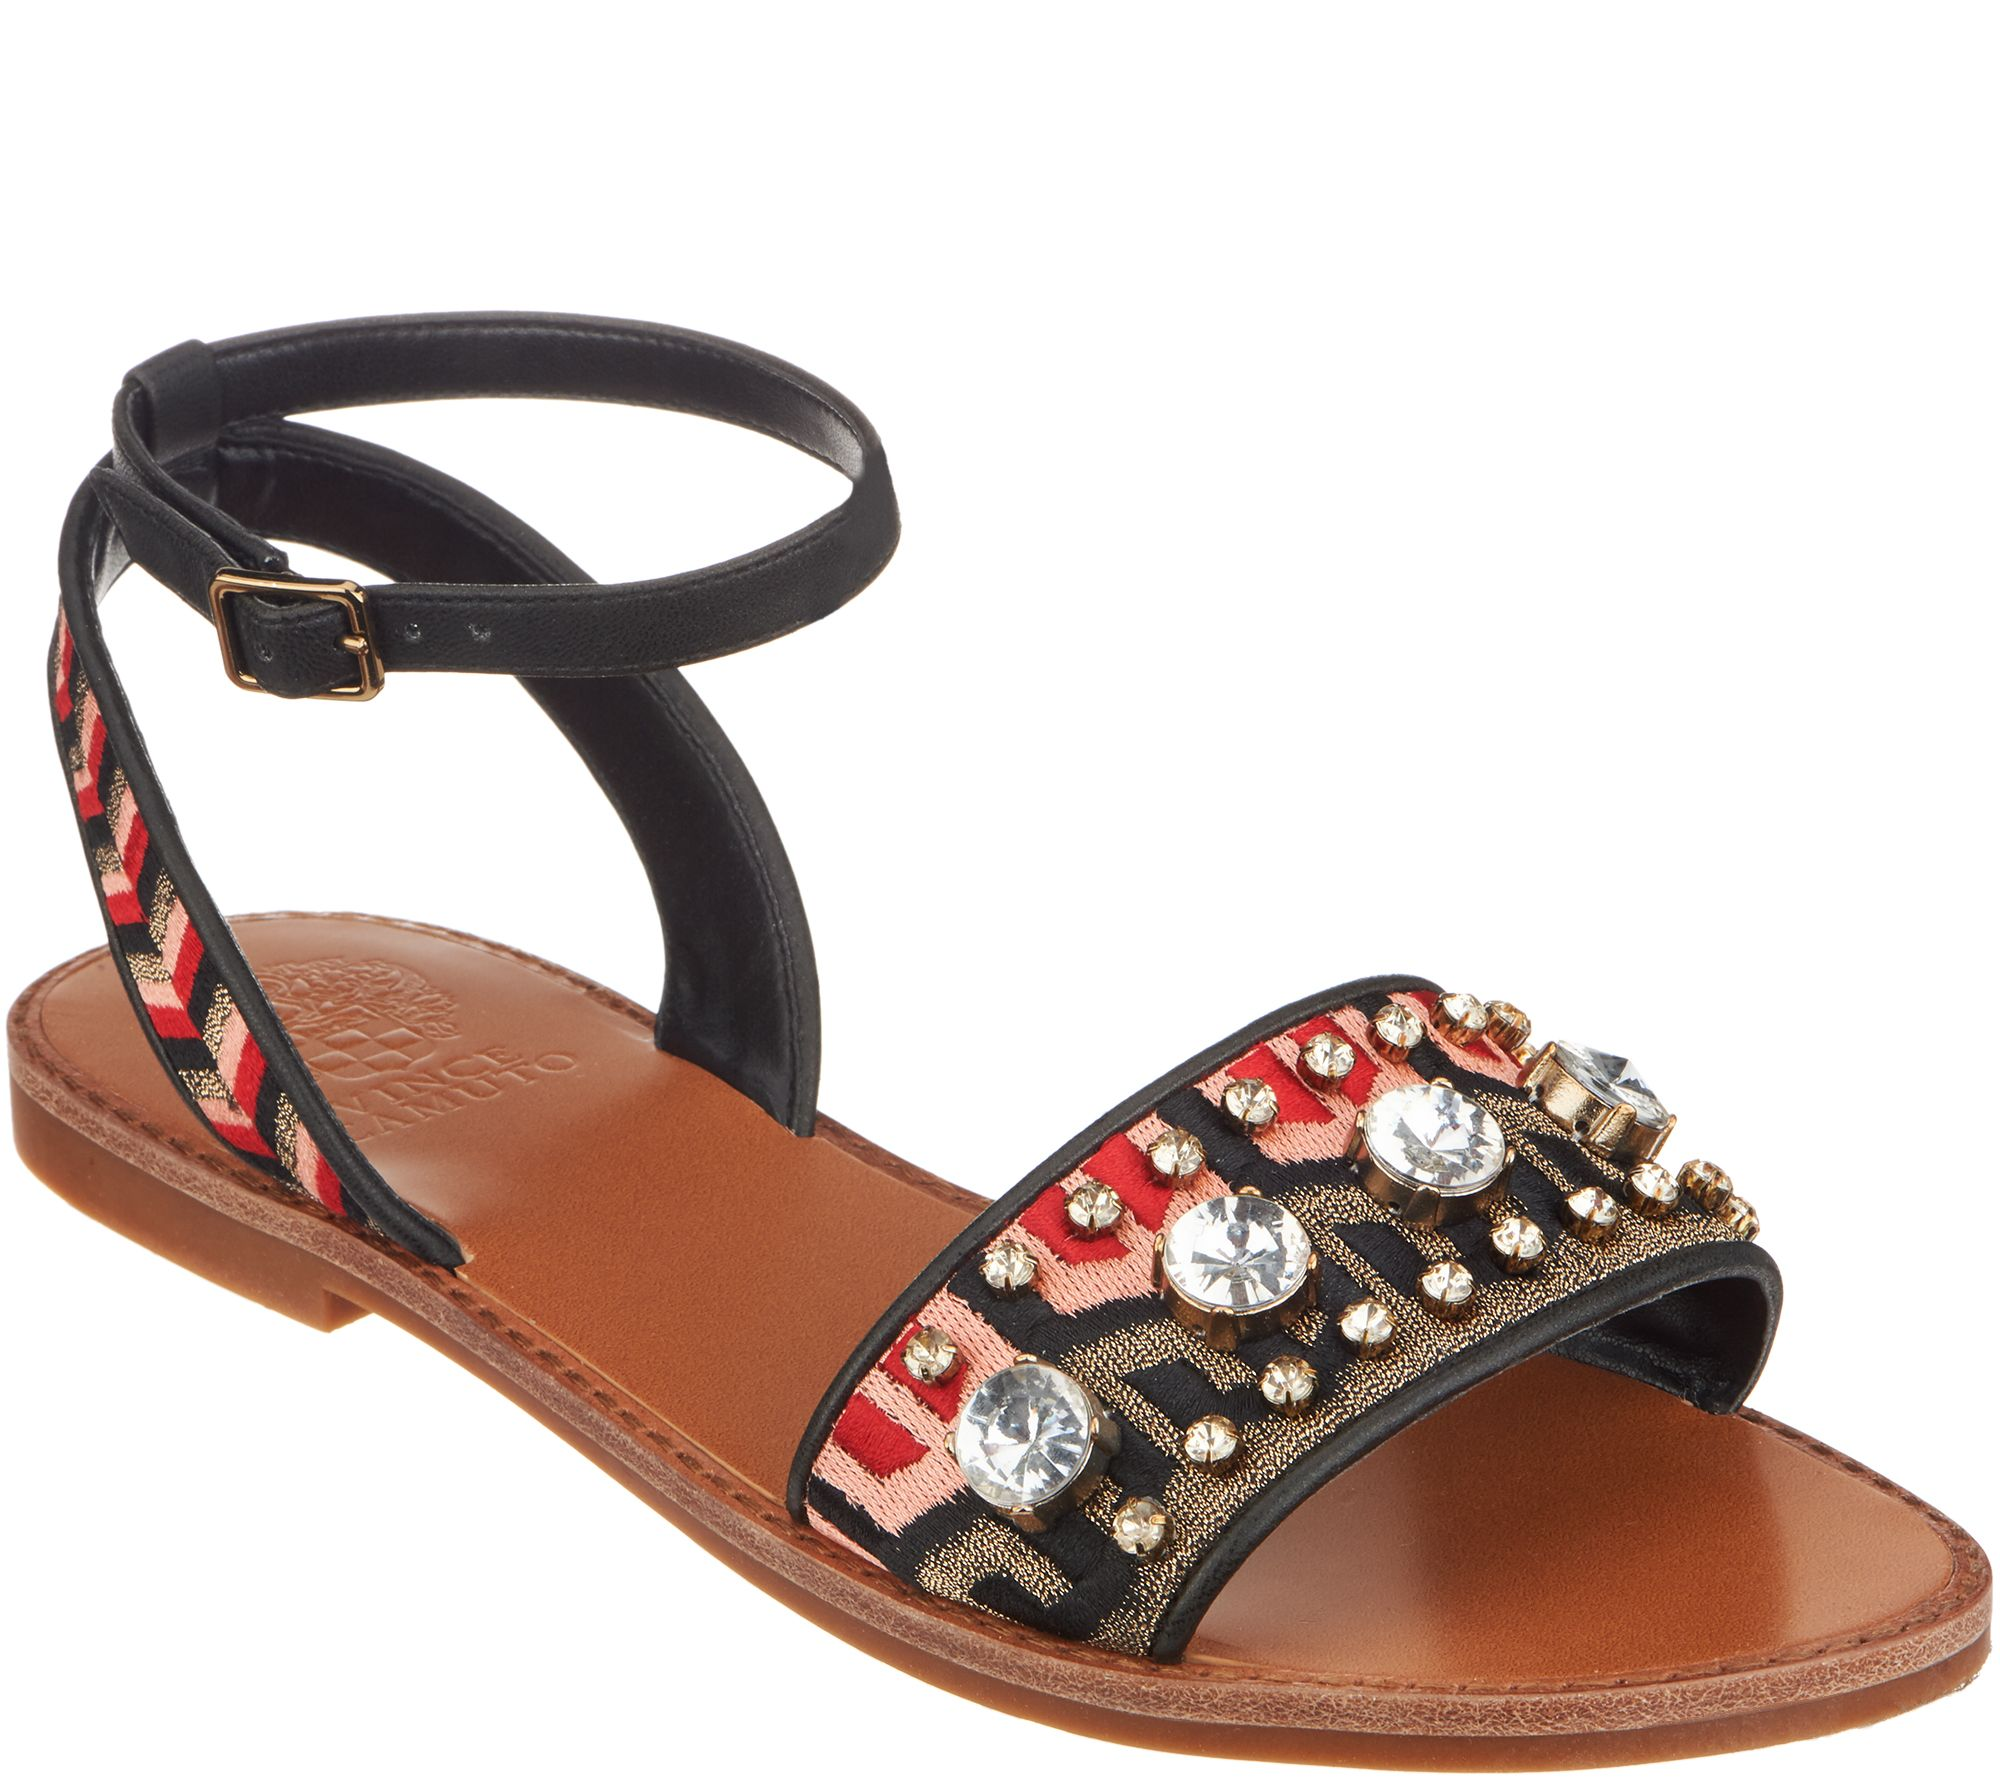 b88042f19f47a6 Vince Camuto Embroidered Sandals w  Ankle Strap - Akitta - Page 1 — QVC.com